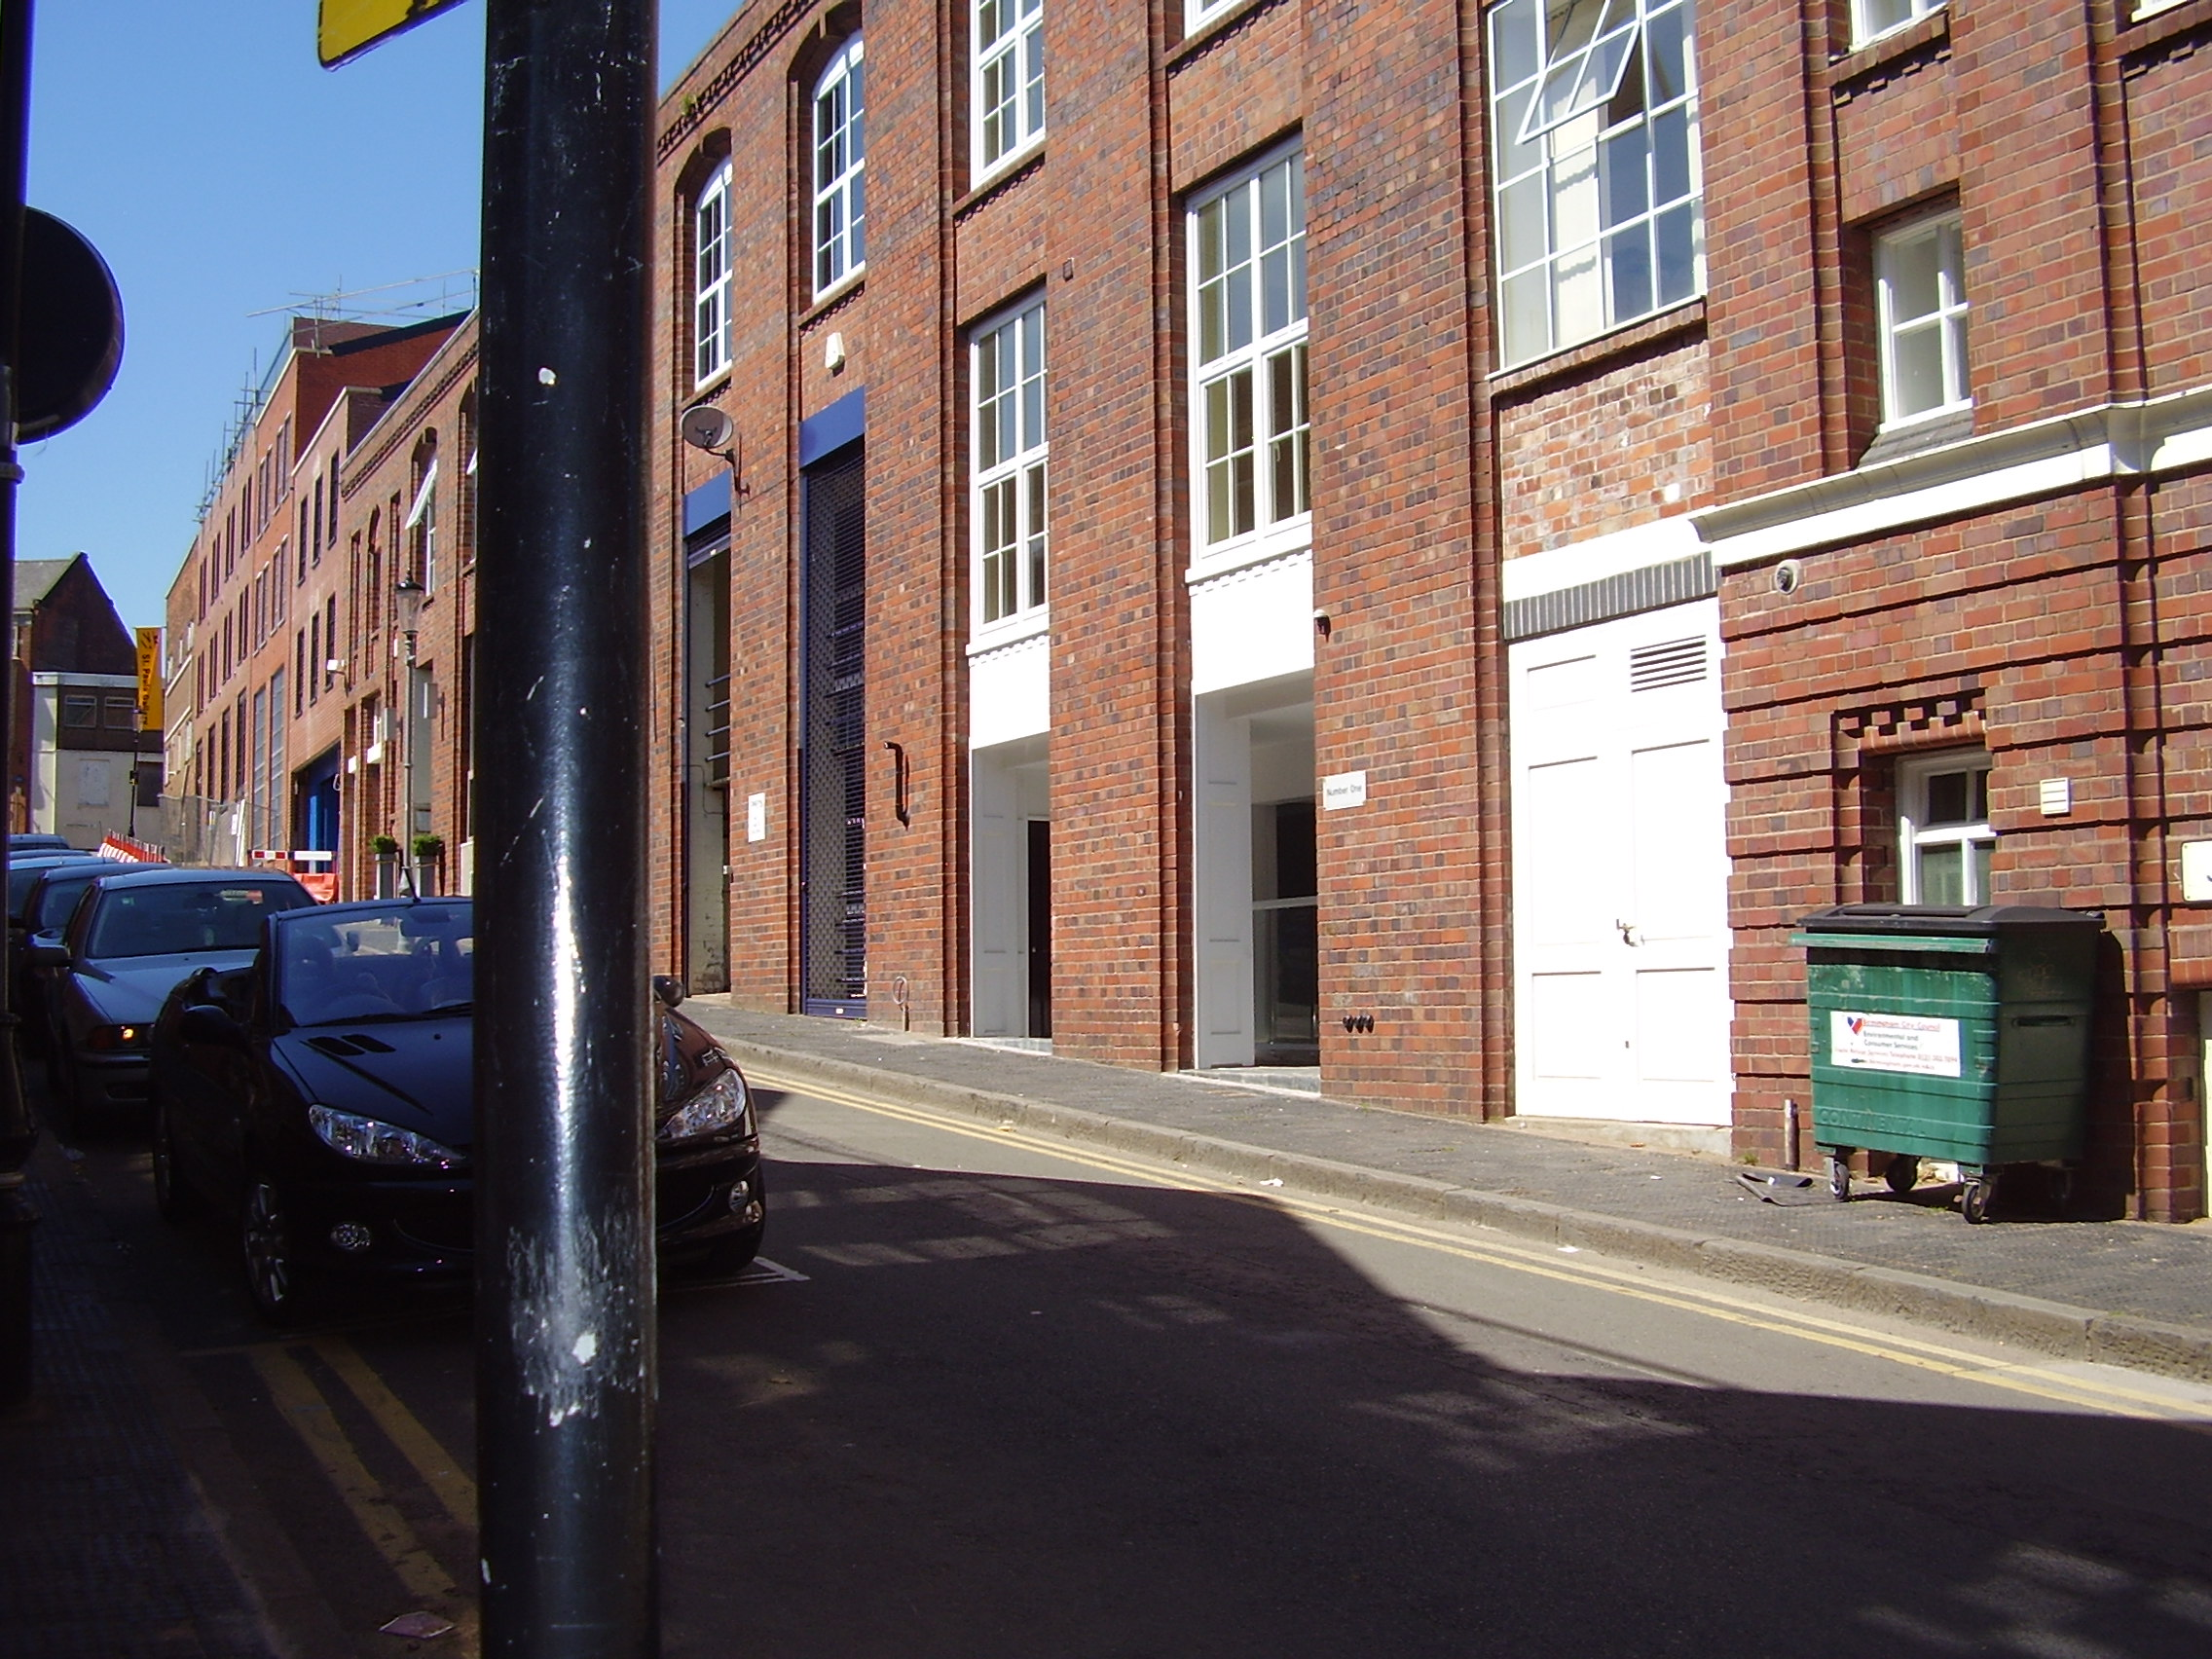 2008 Street view photo 11 of St Pauls Square Area of the Jewellery Quarter Birmingham